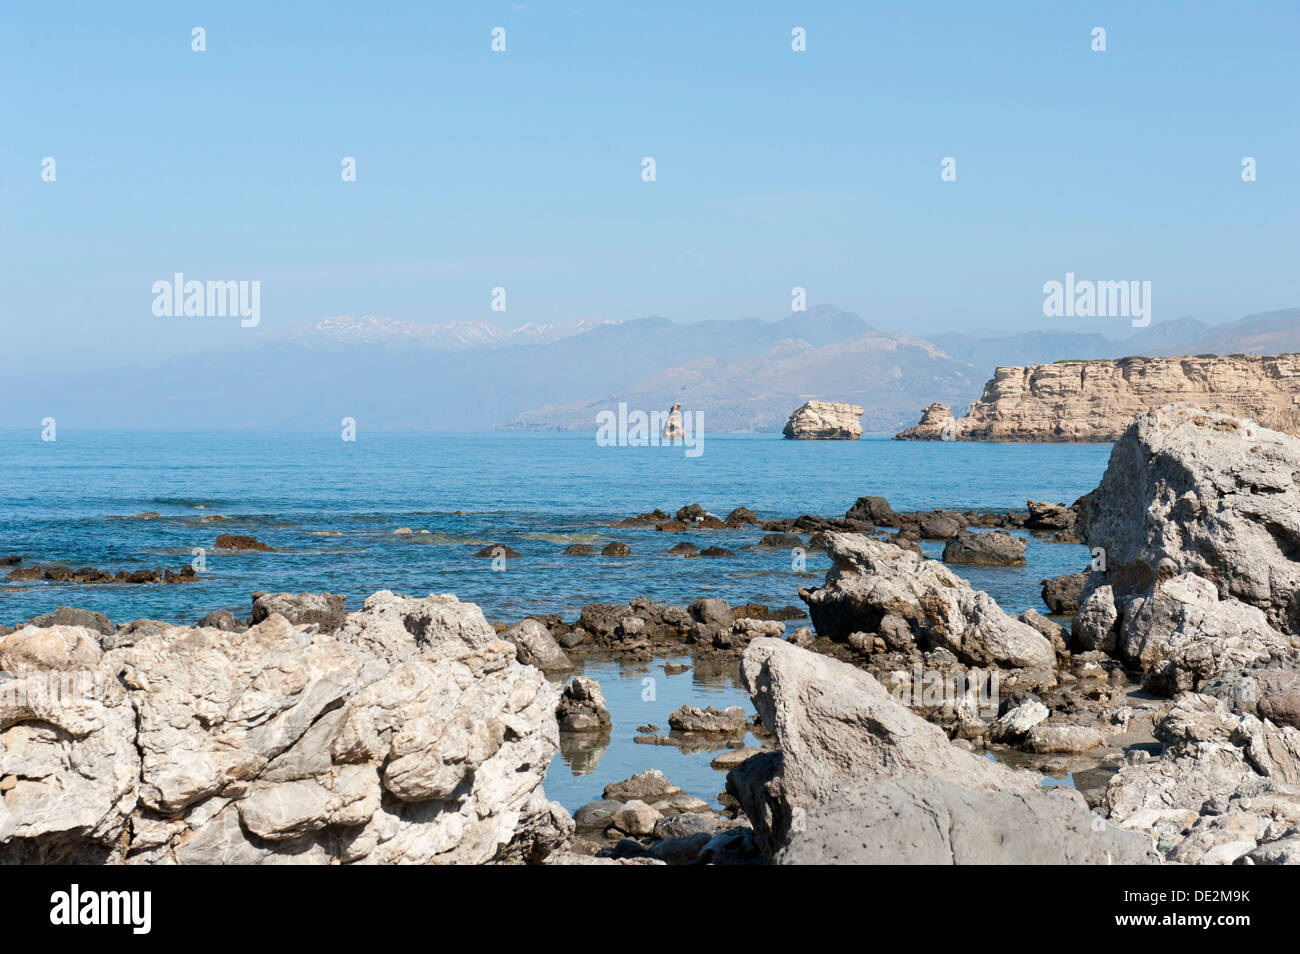 Secluded bay, coast, rugged limestone cliffs, Triopetra, Agios Pavlos, the White Mountains at back, Crete, Libyan Sea - Stock Image